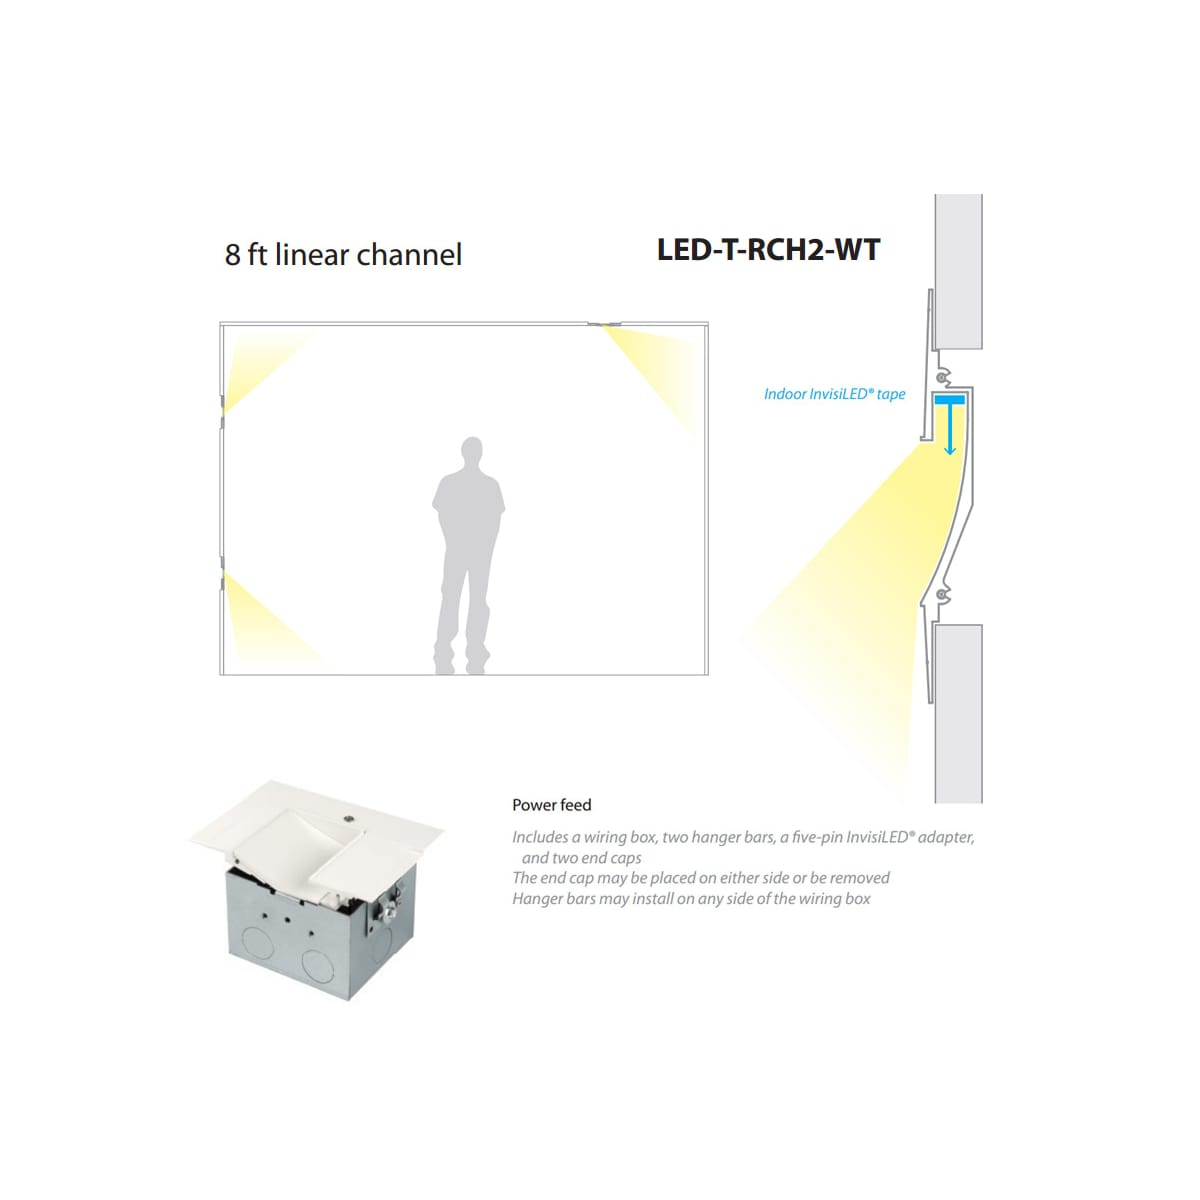 wac lighting led-t-rch2-wt white invisiled recessed channels 8 foot  asymmetrical linear channel for invisiled tape light - lightingshowplace com